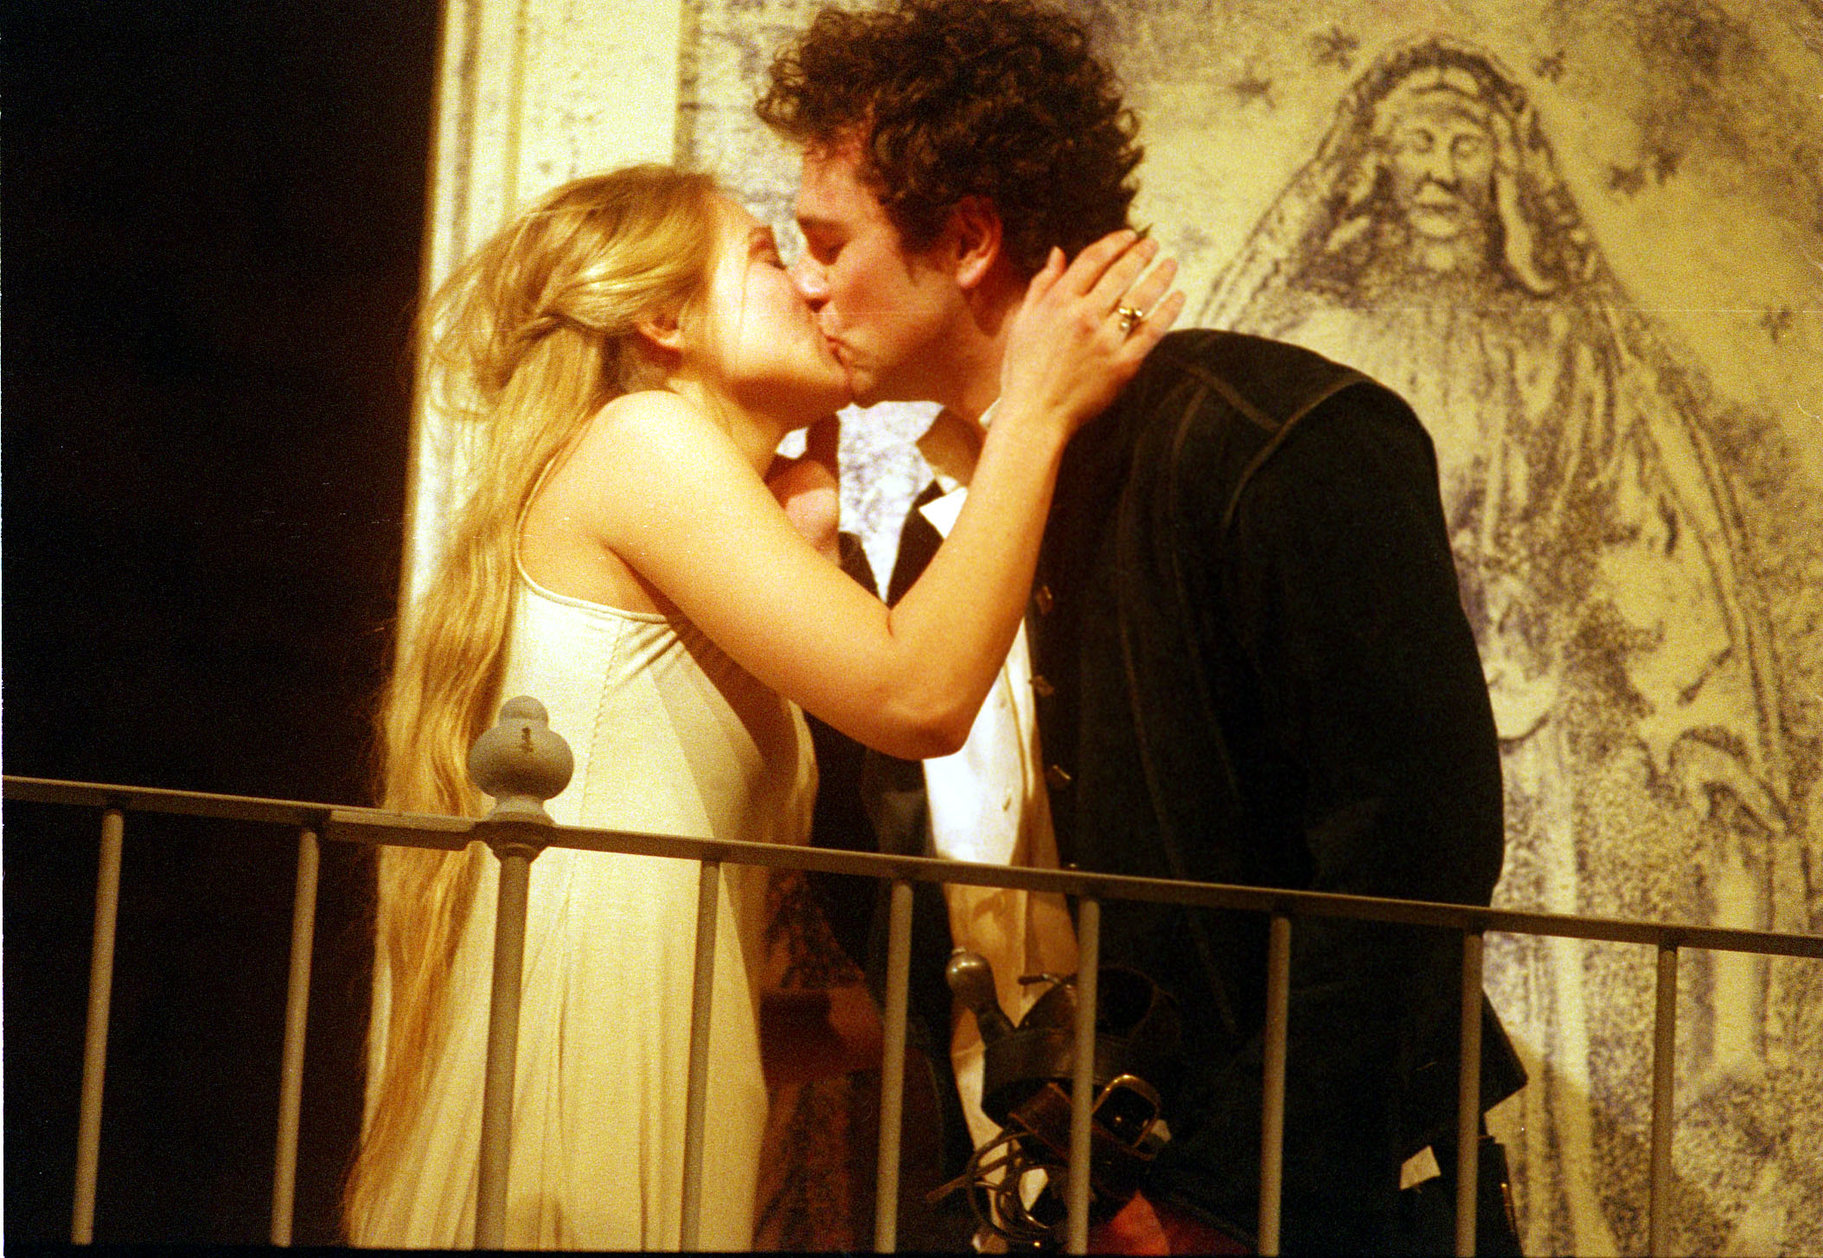 Romeo and Juliet on the balcony.